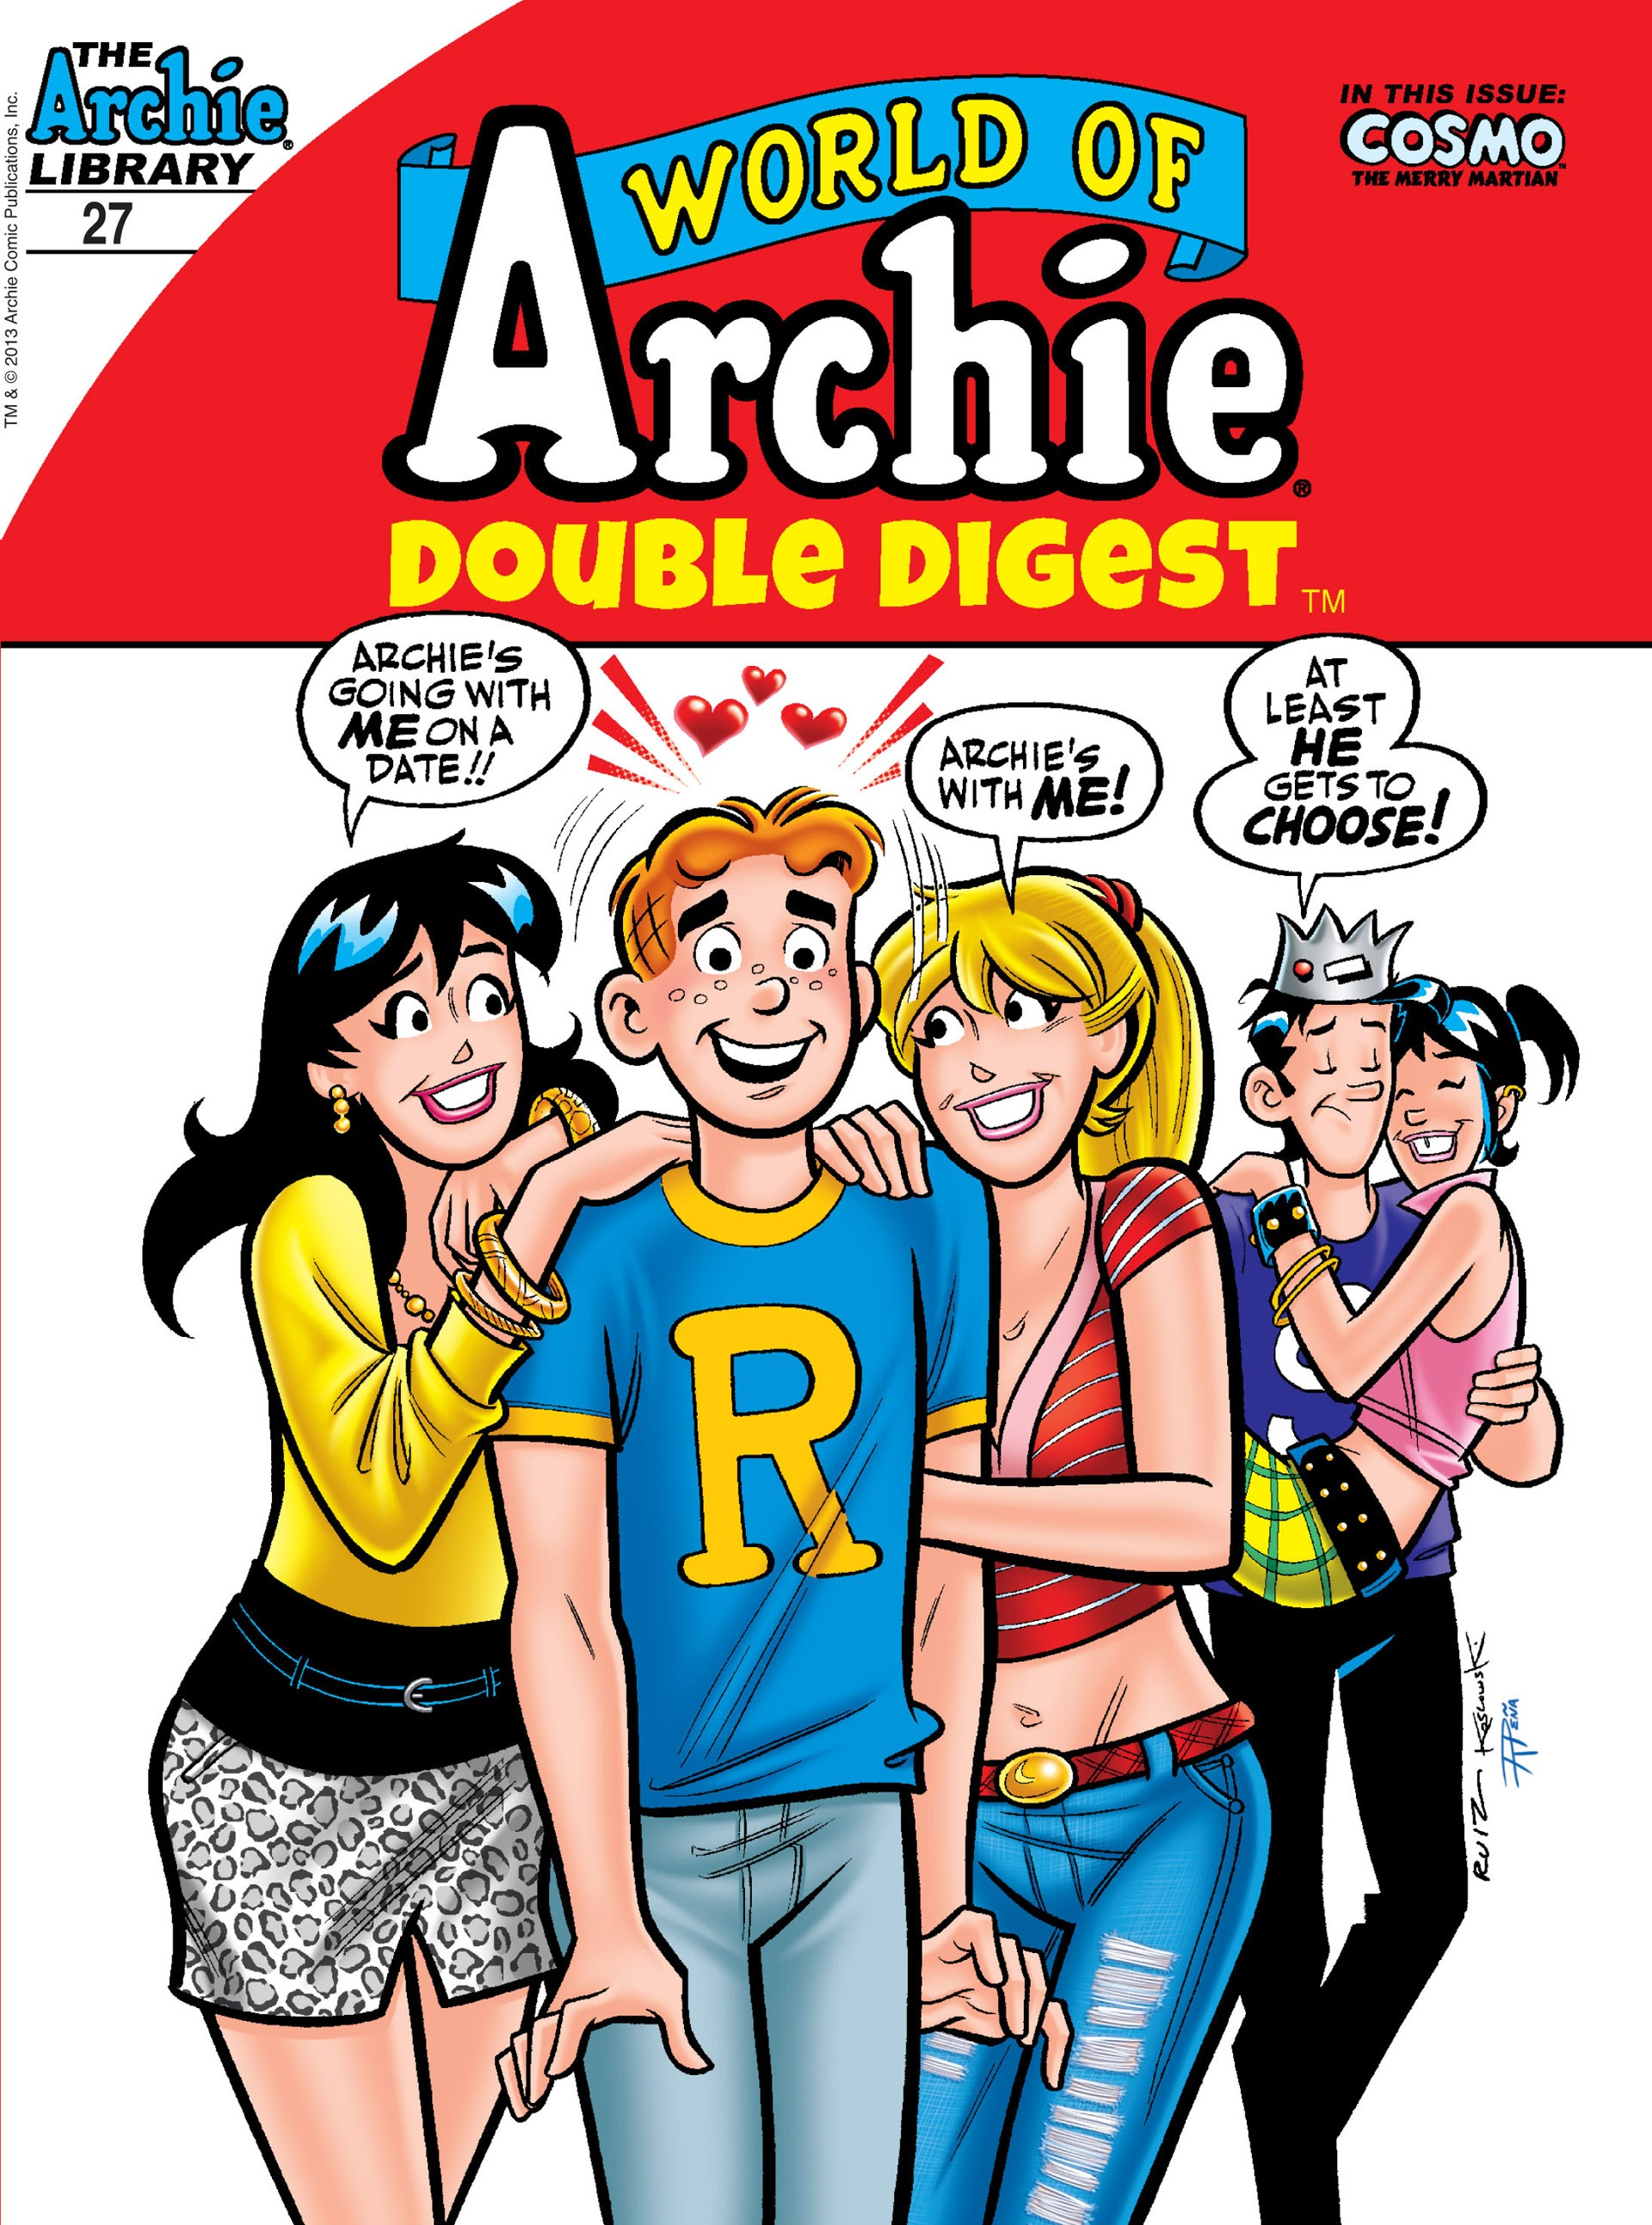 World of Archie Double Digest 27 Page 1